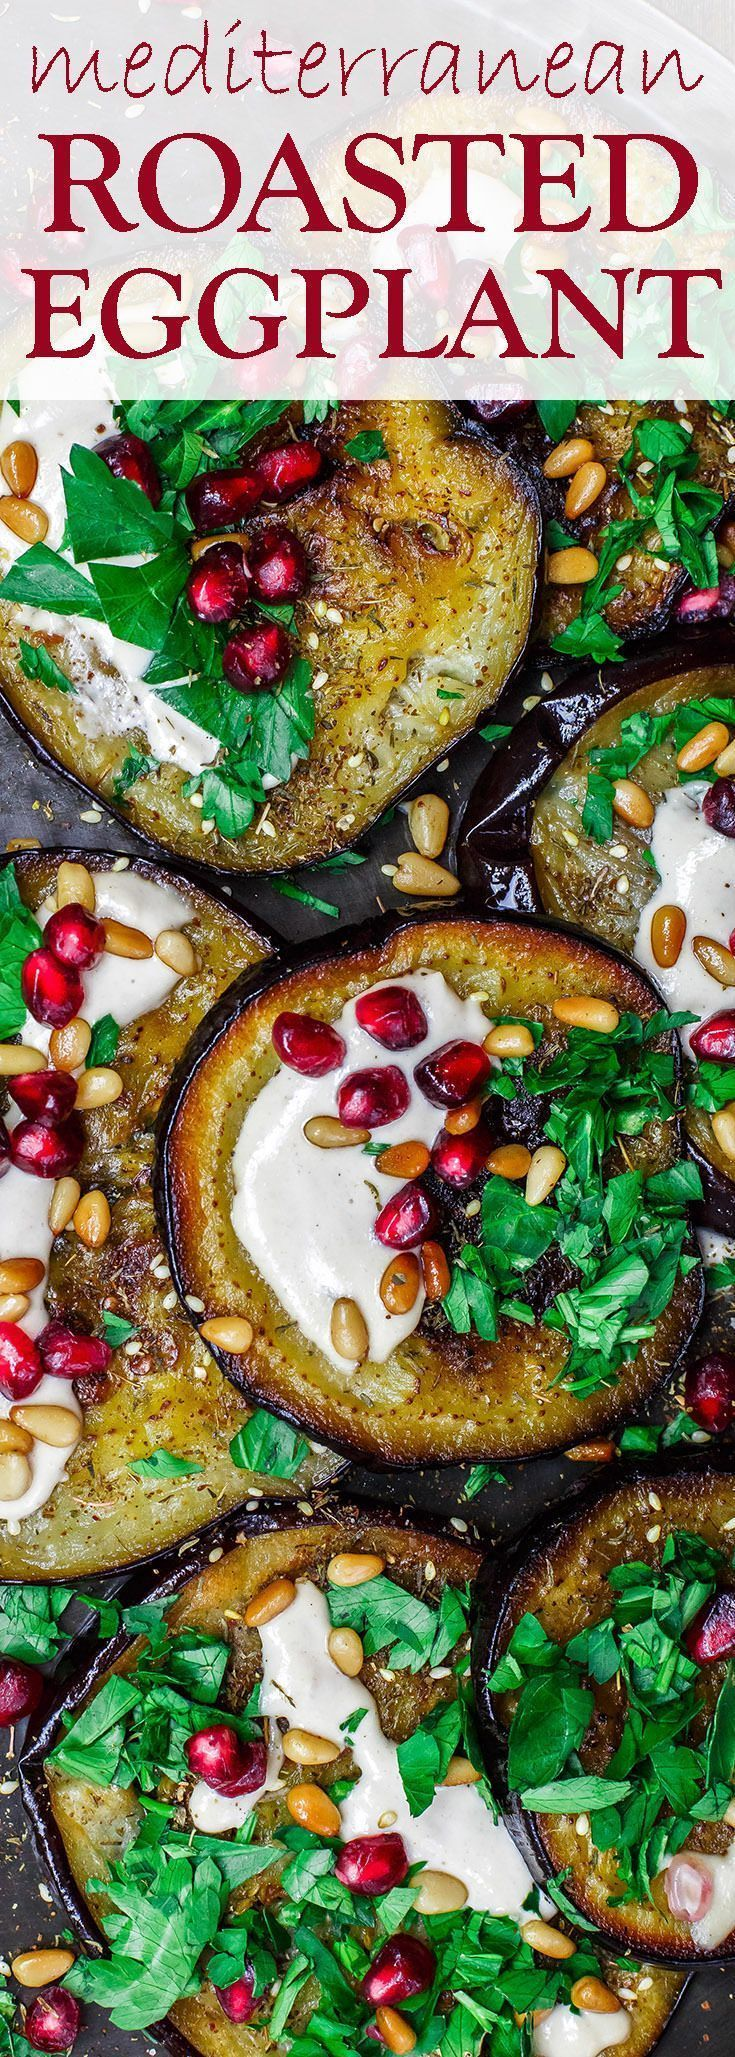 Mediterranean Roasted Eggplant Recipe | The Mediterranean Dish. An easy roasted eggplant recipe, prepared Mediterranean-style with pomegranates, tahini and fresh parsley. Great as an appetizer, salad, or side dish! See it on TheMediterraneanD...